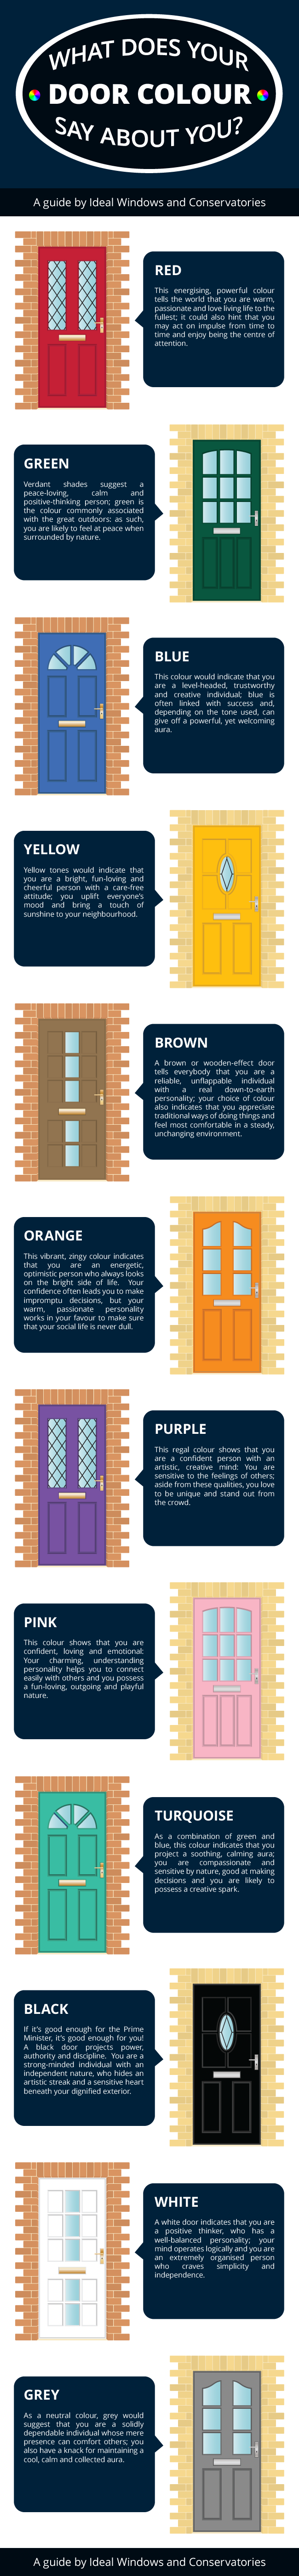 What_Does_Your_Door_Colour_Say_About_You